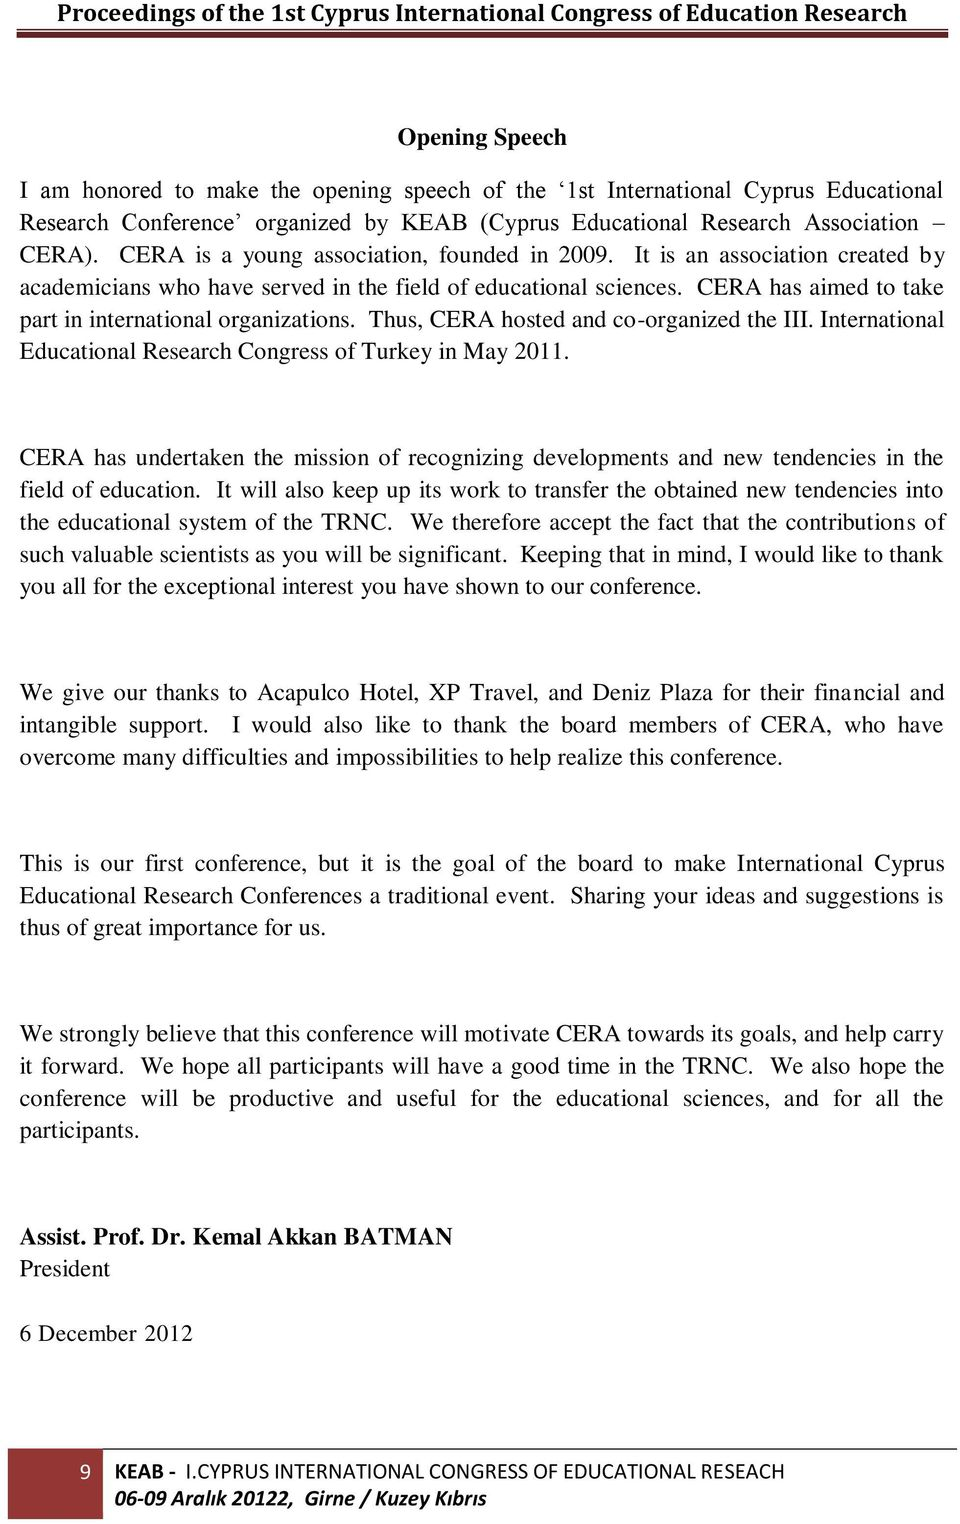 CERA has aimed to take part in international organizations. Thus, CERA hosted and co-organized the III. International Educational Research Congress of Turkey in May 2011.